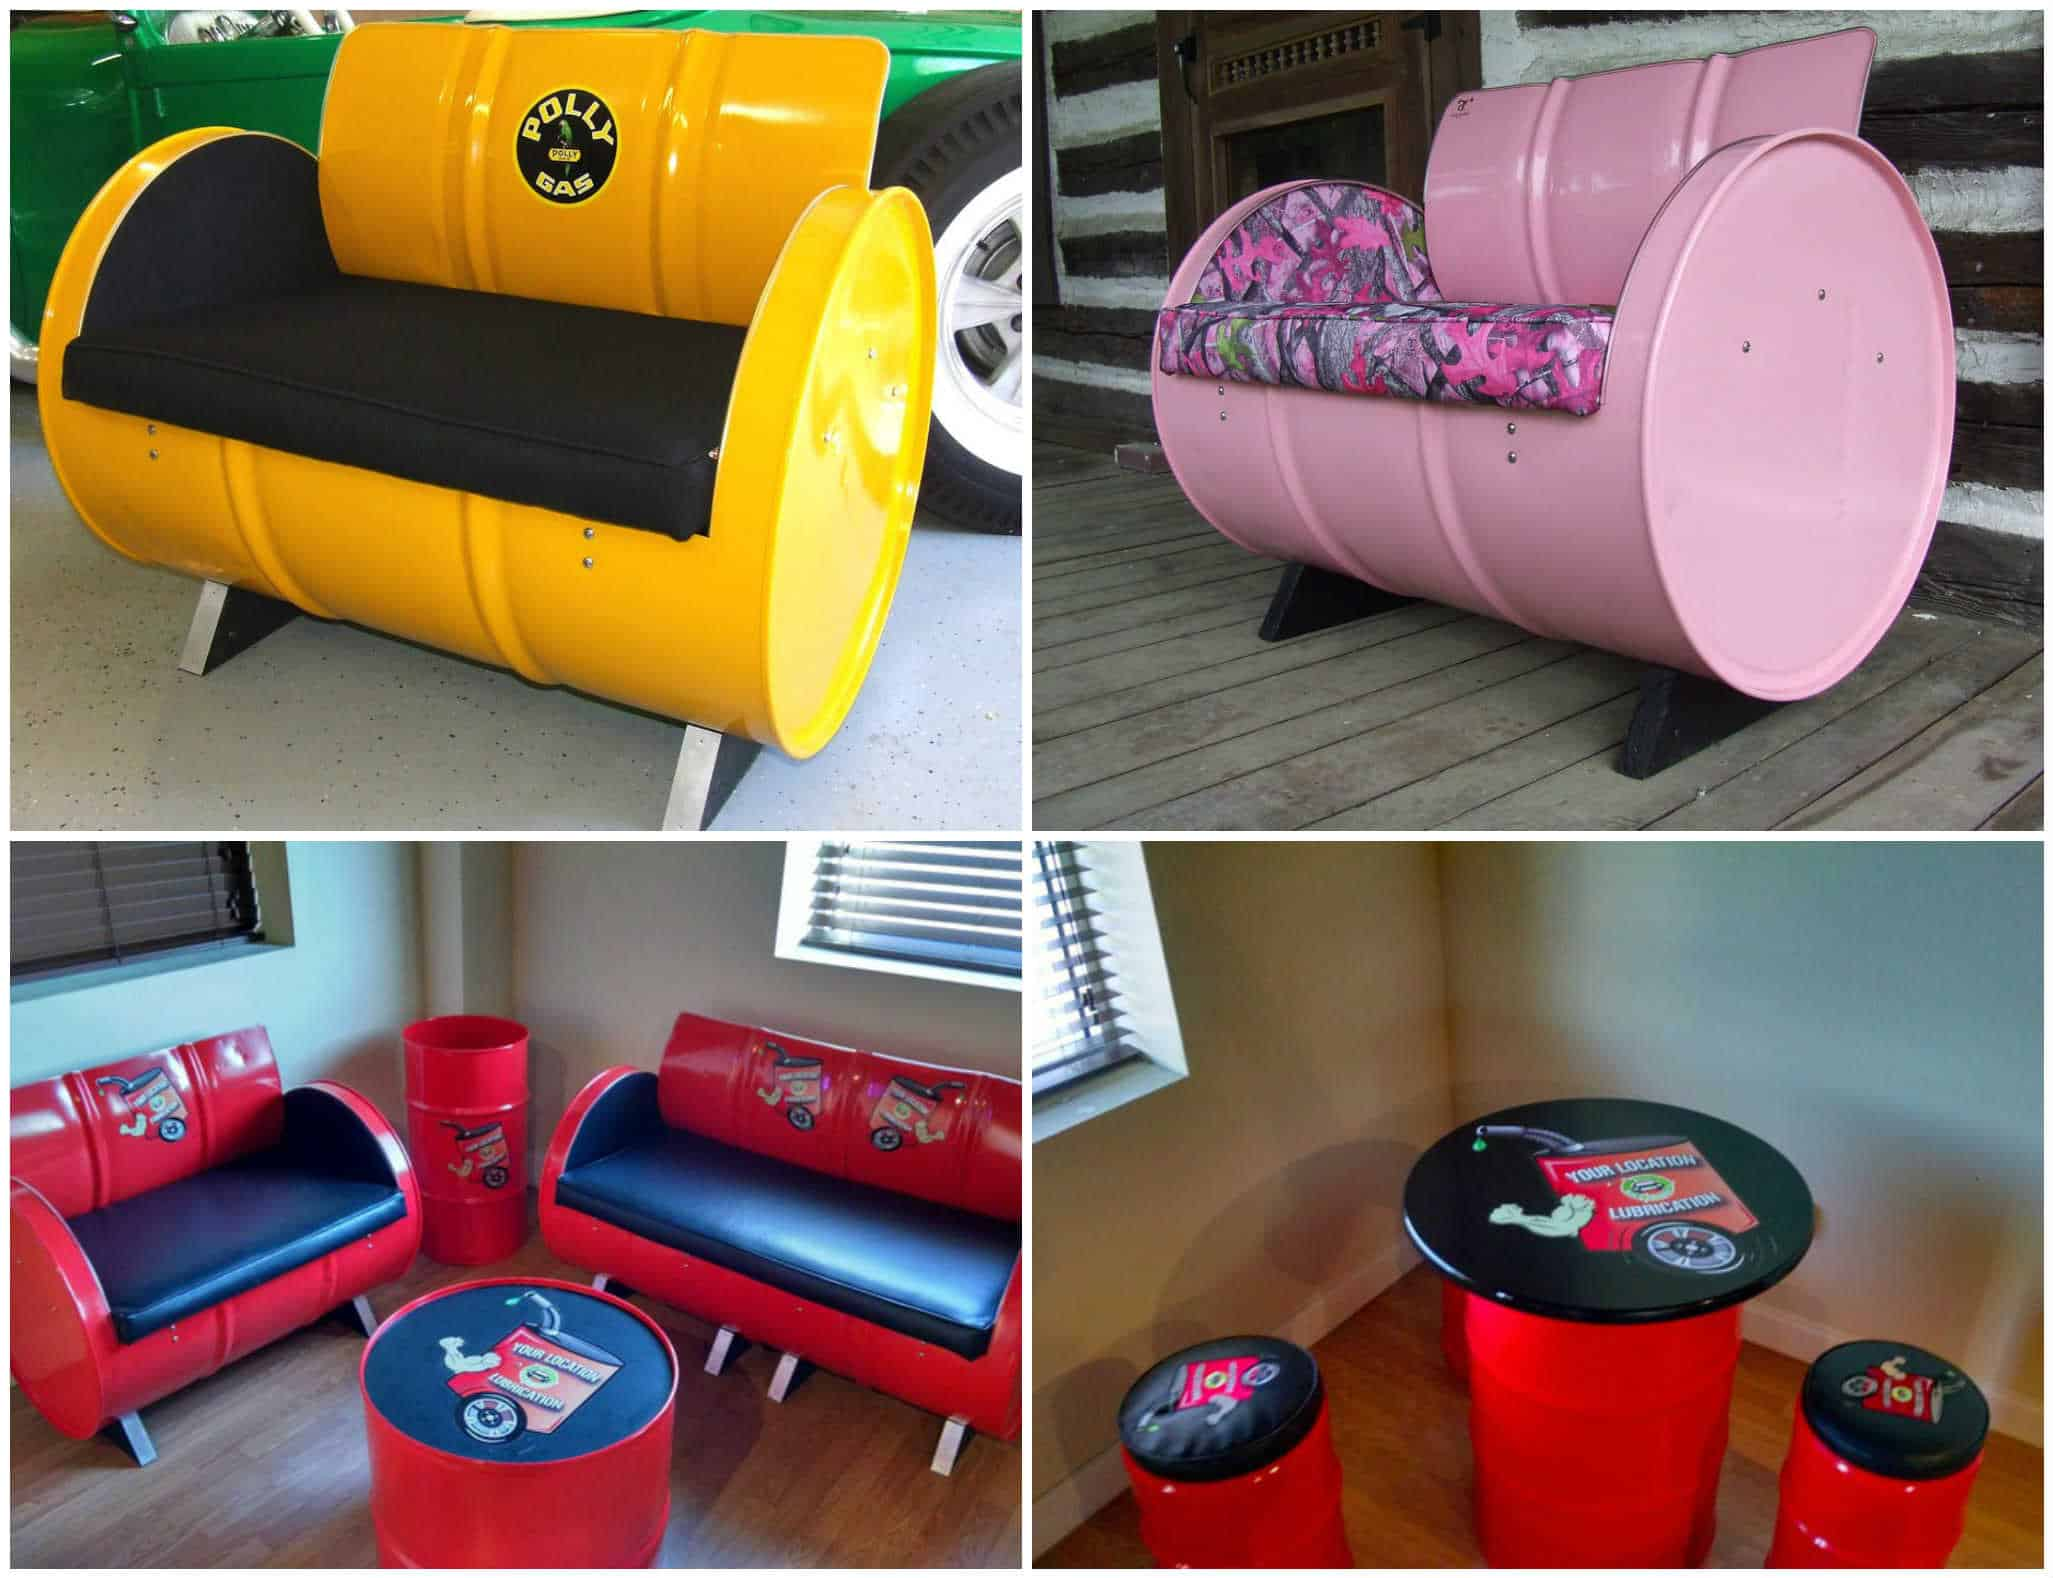 55 Gallon Steel Drums Upcycled Into Furniture Recyclart